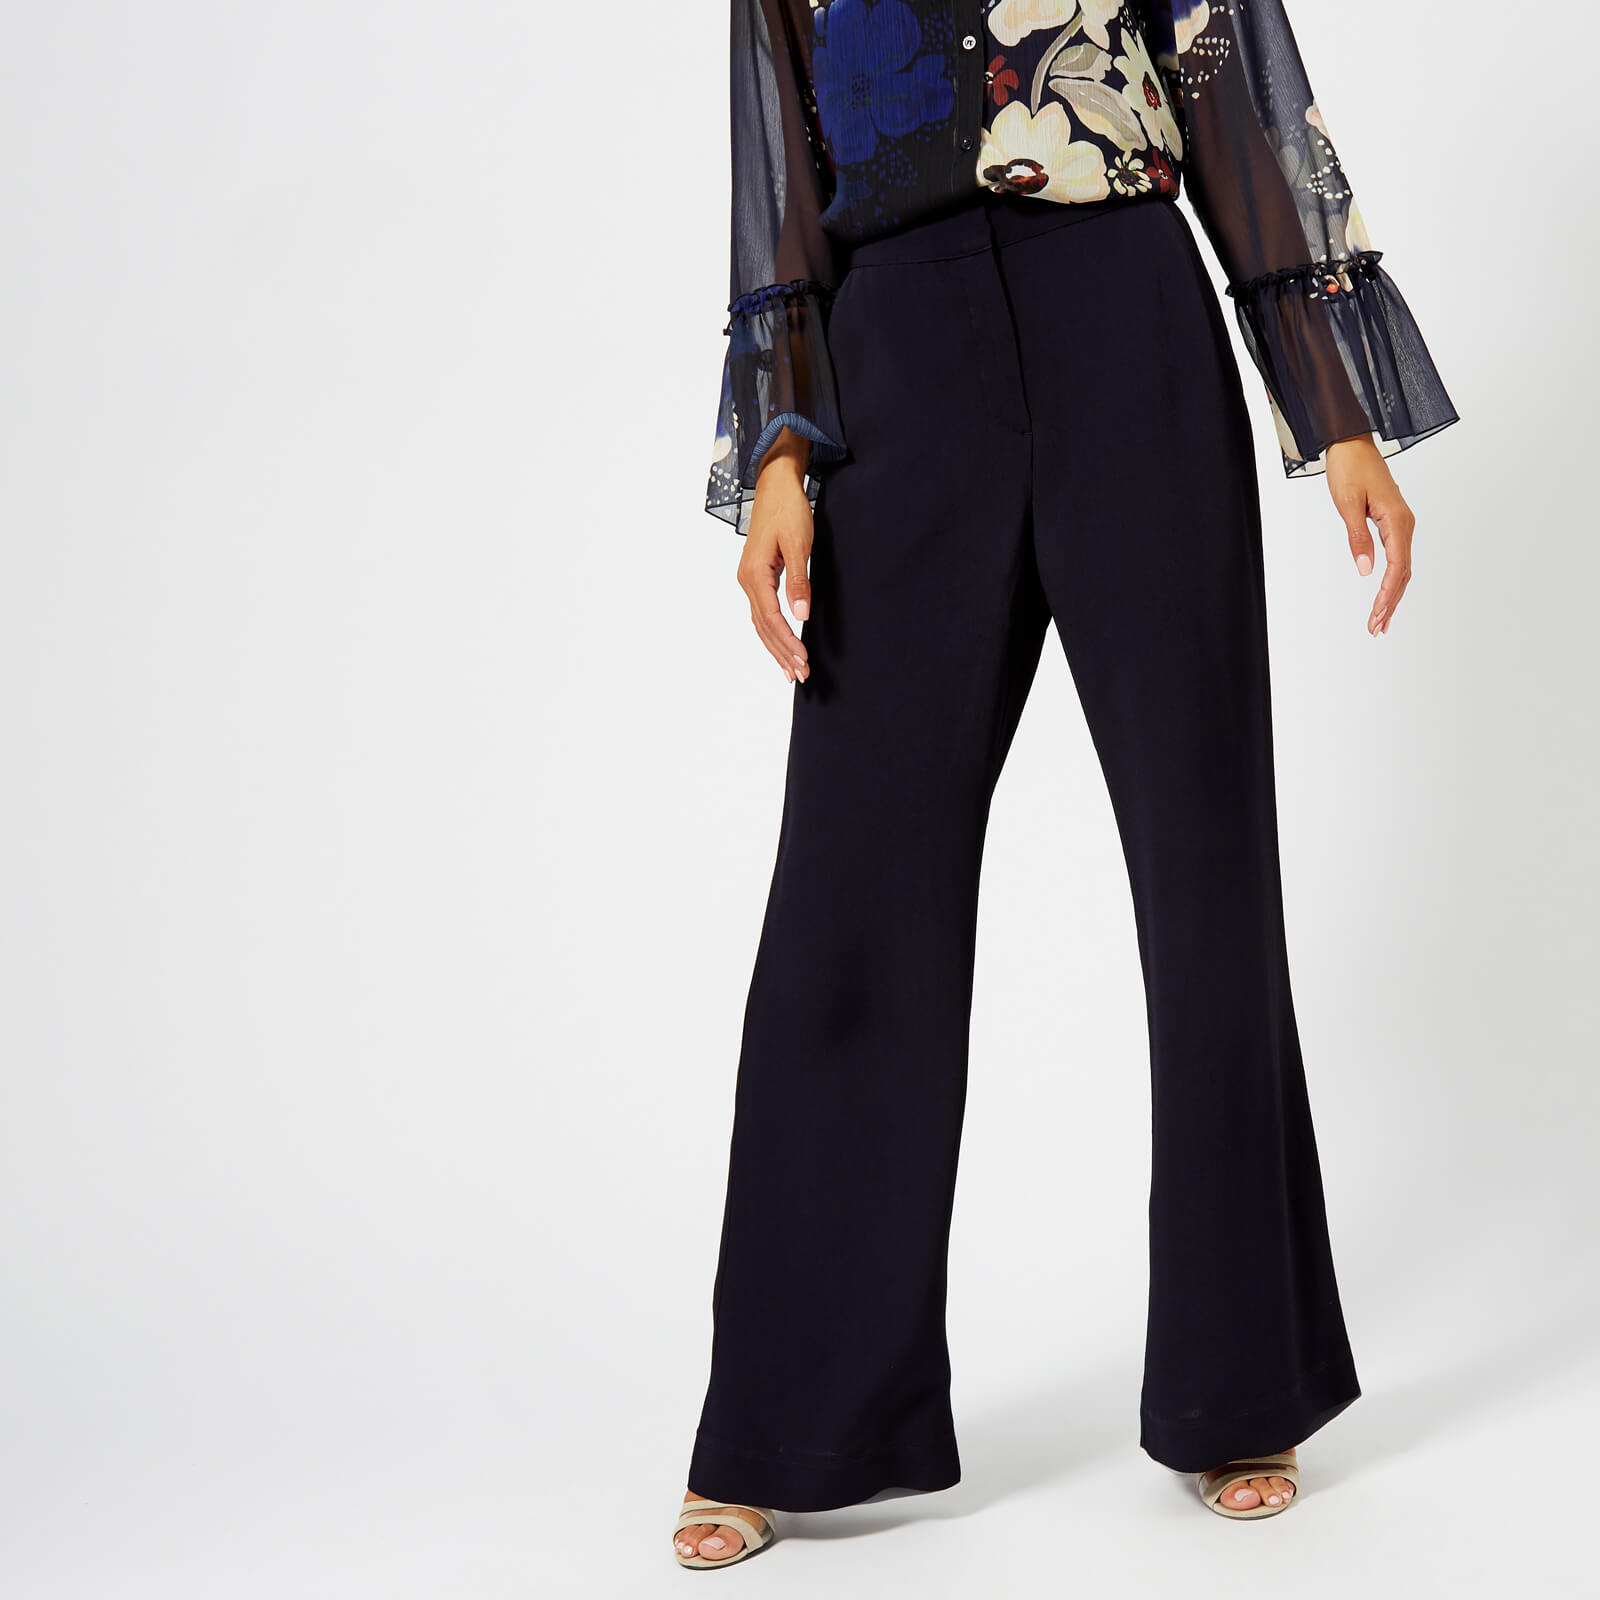 5d4bbf077c02 See By Chloé Women s Wide Leg Trousers - Ink Navy - Free UK Delivery ...